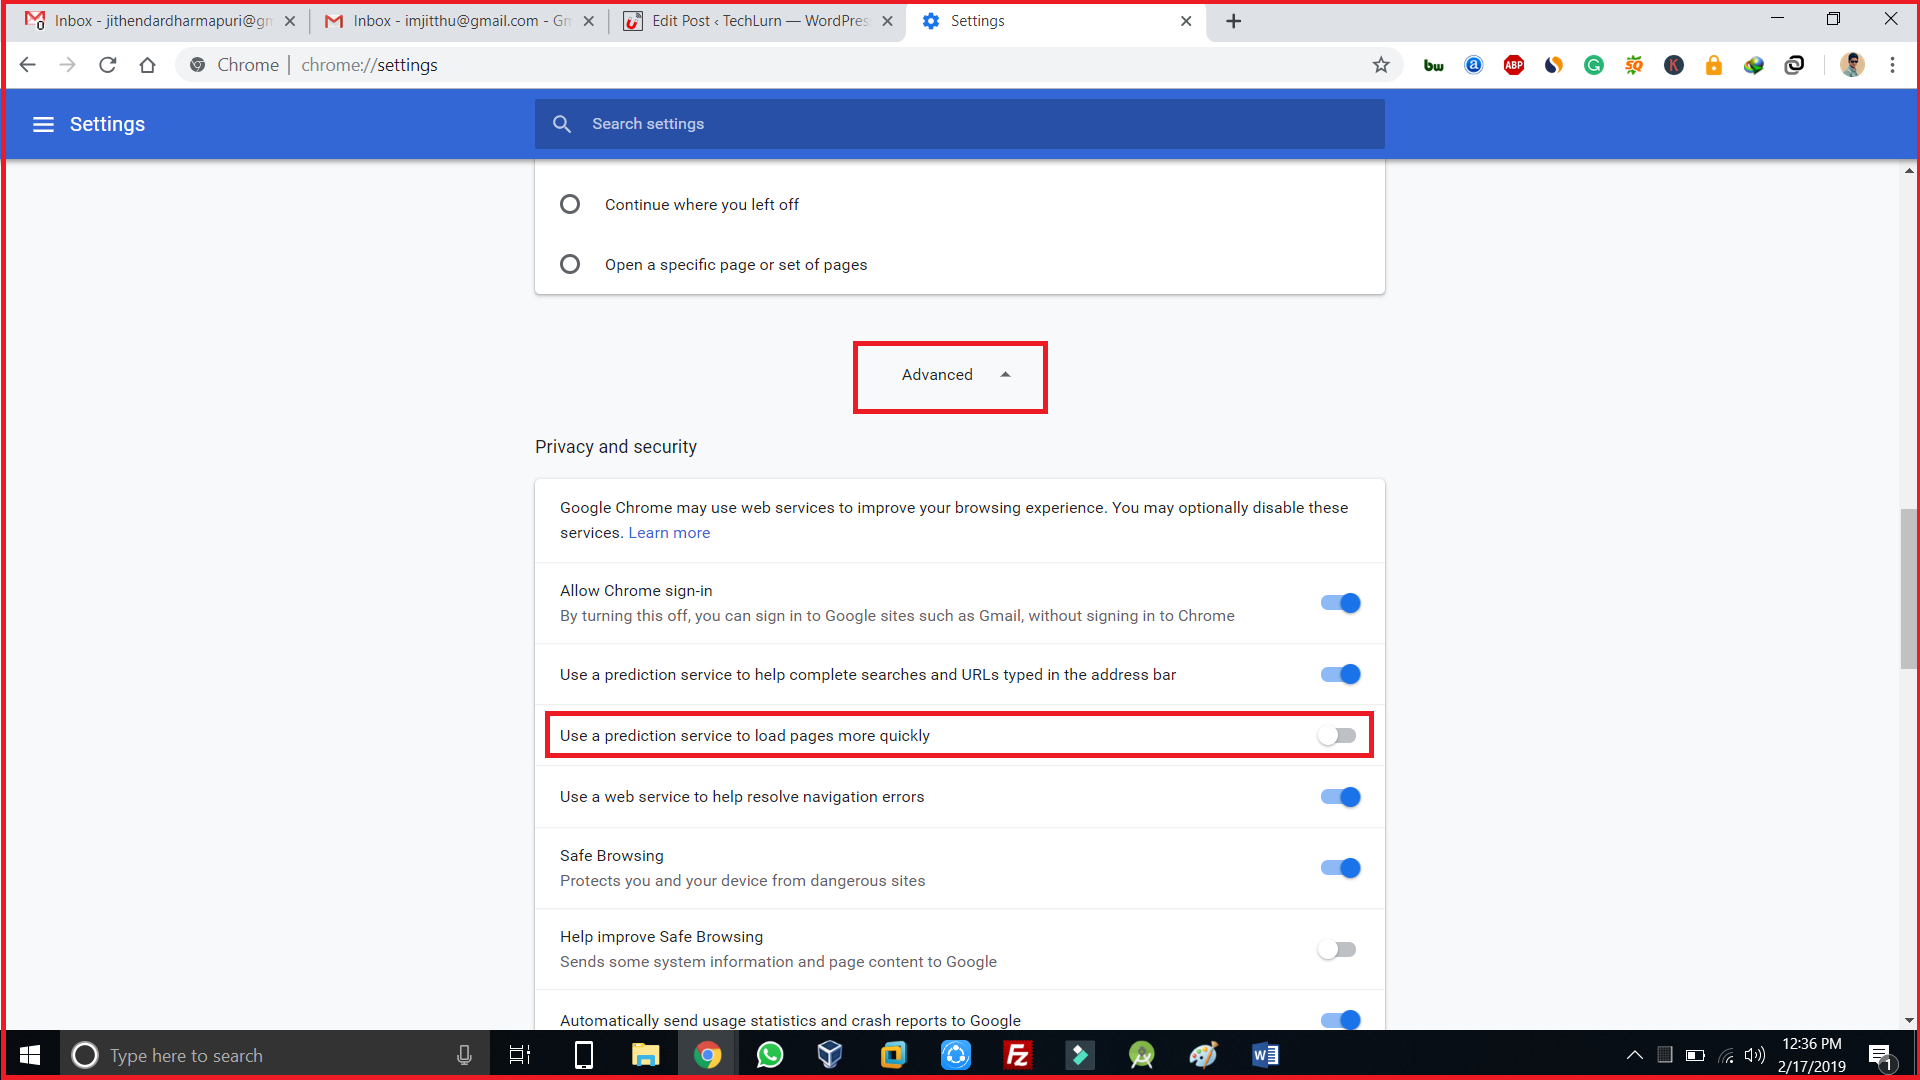 Use a prediction service to load pages more quicklyin chrome settings